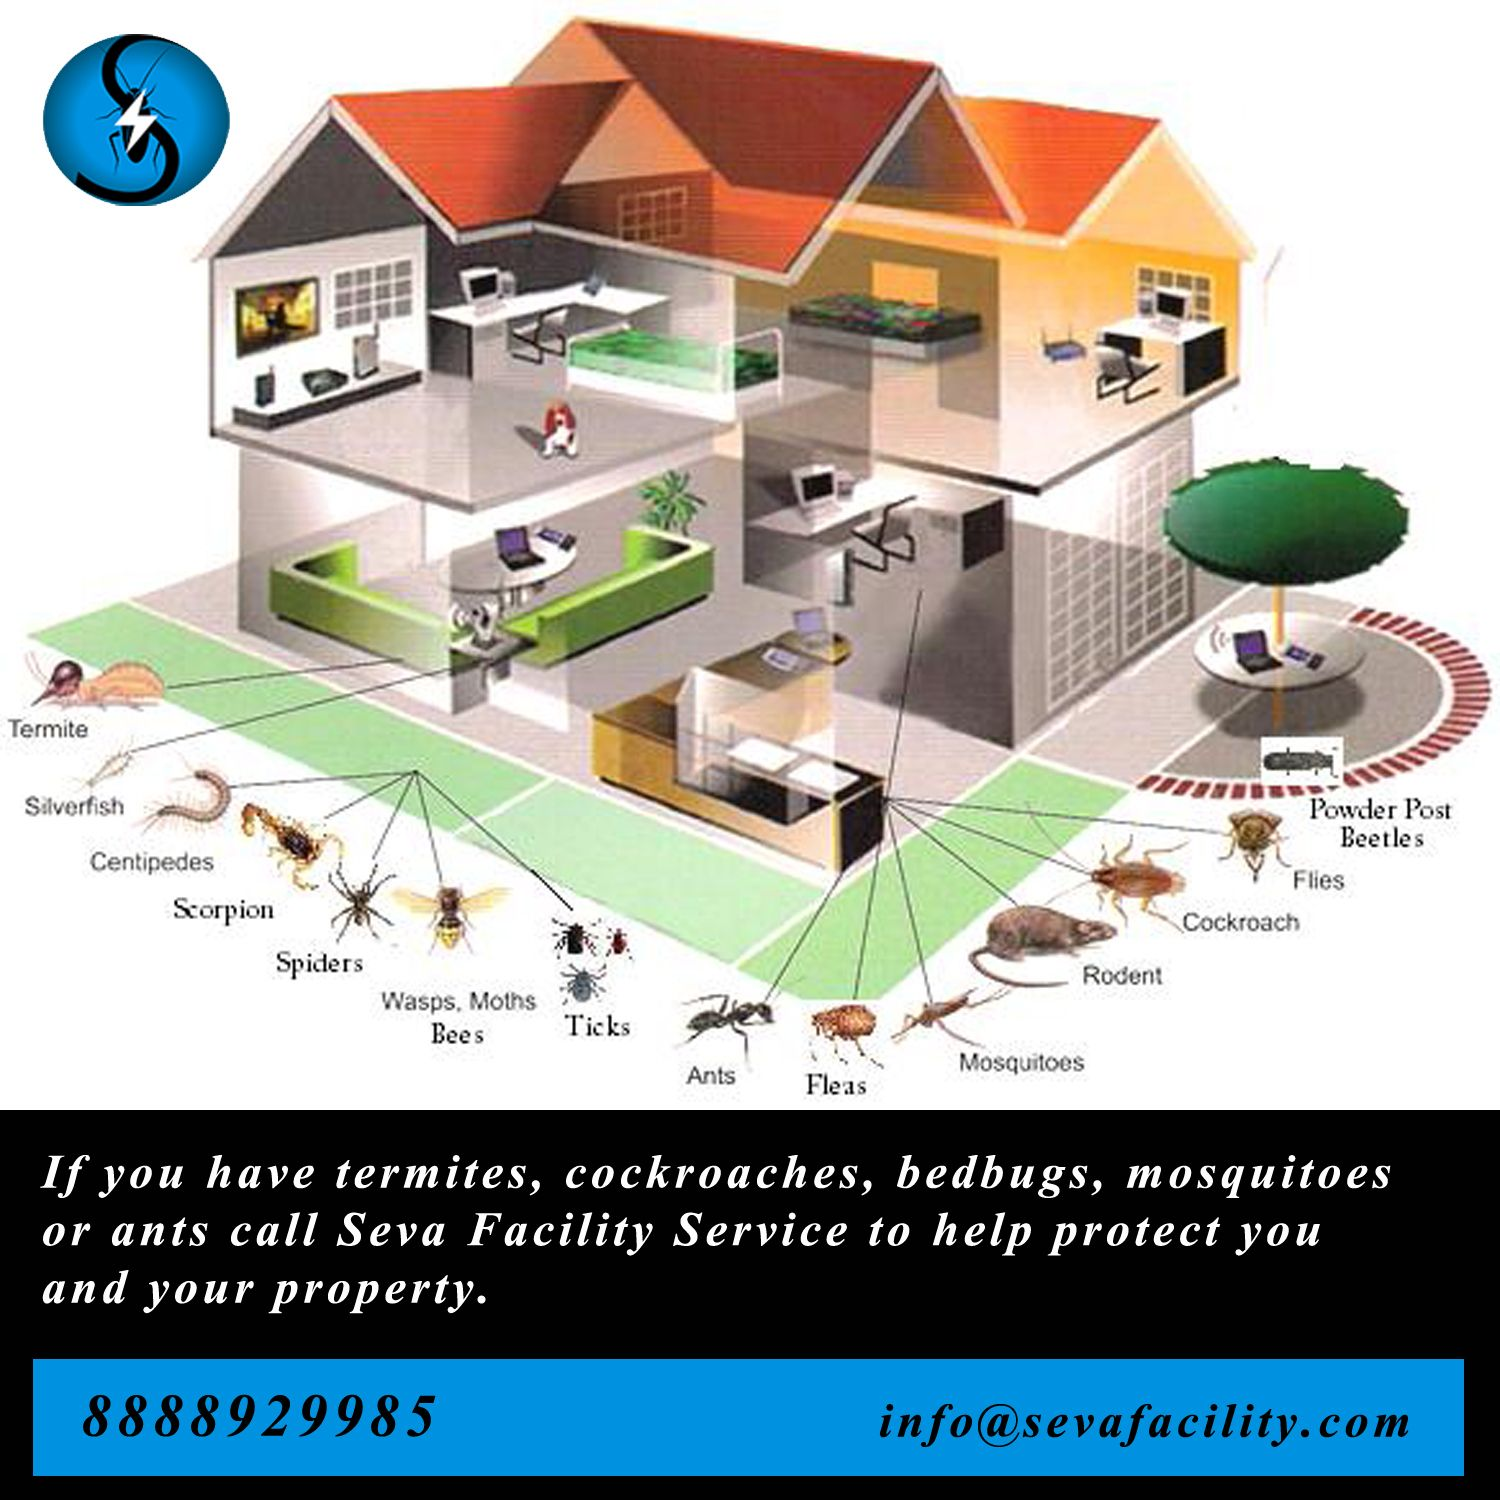 If you have any pest , call Seva Facility Service to